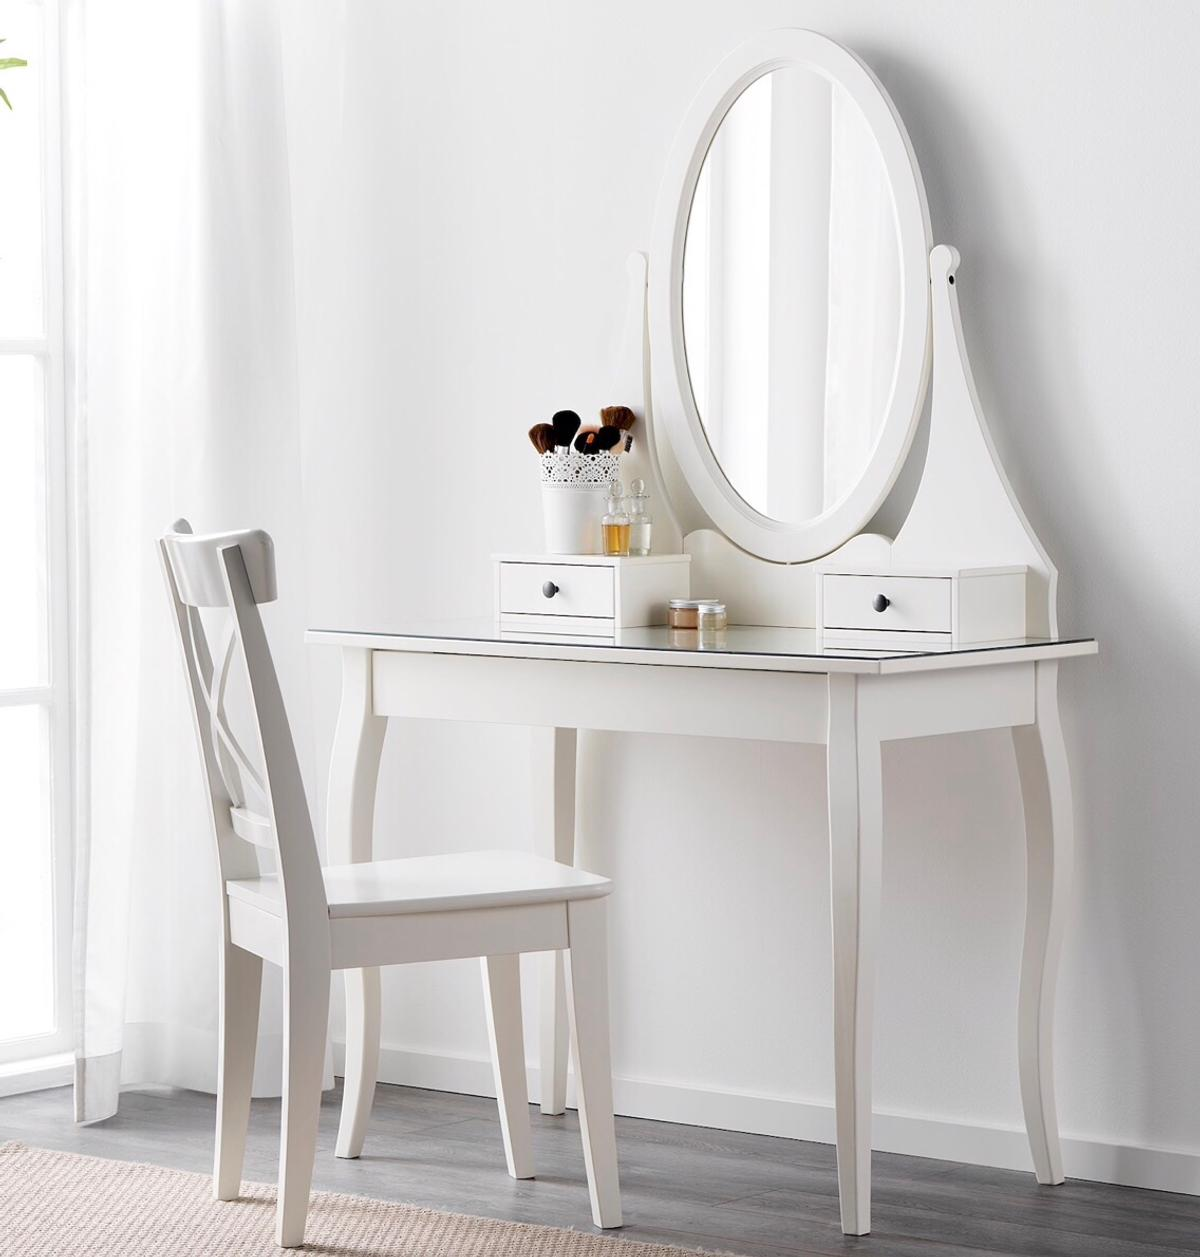 Color: white Dimensions: length 100x depth 50 cm x 74 hight without the mirror ( length of mirror is 84 cm)  Very elegant, the table top is glass and comes with 1 drawer and two small drawers as shown  In a very good condition except the mark as shown  Originally bought from Ikea for £165  Collection only.